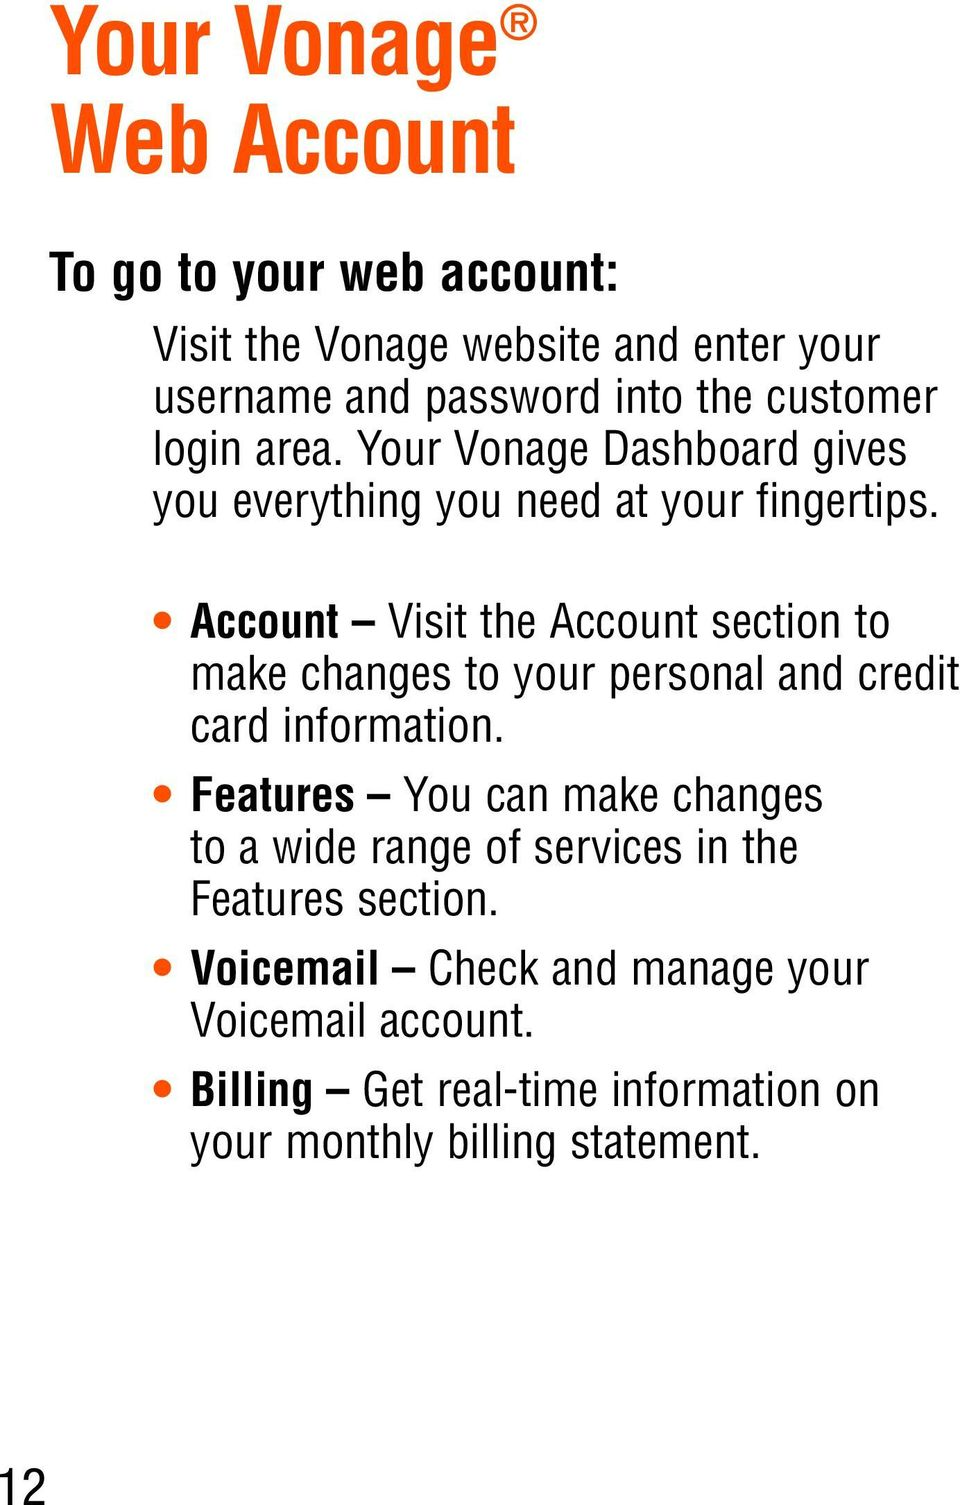 Account Visit the Account section to make changes to your personal and credit card information.